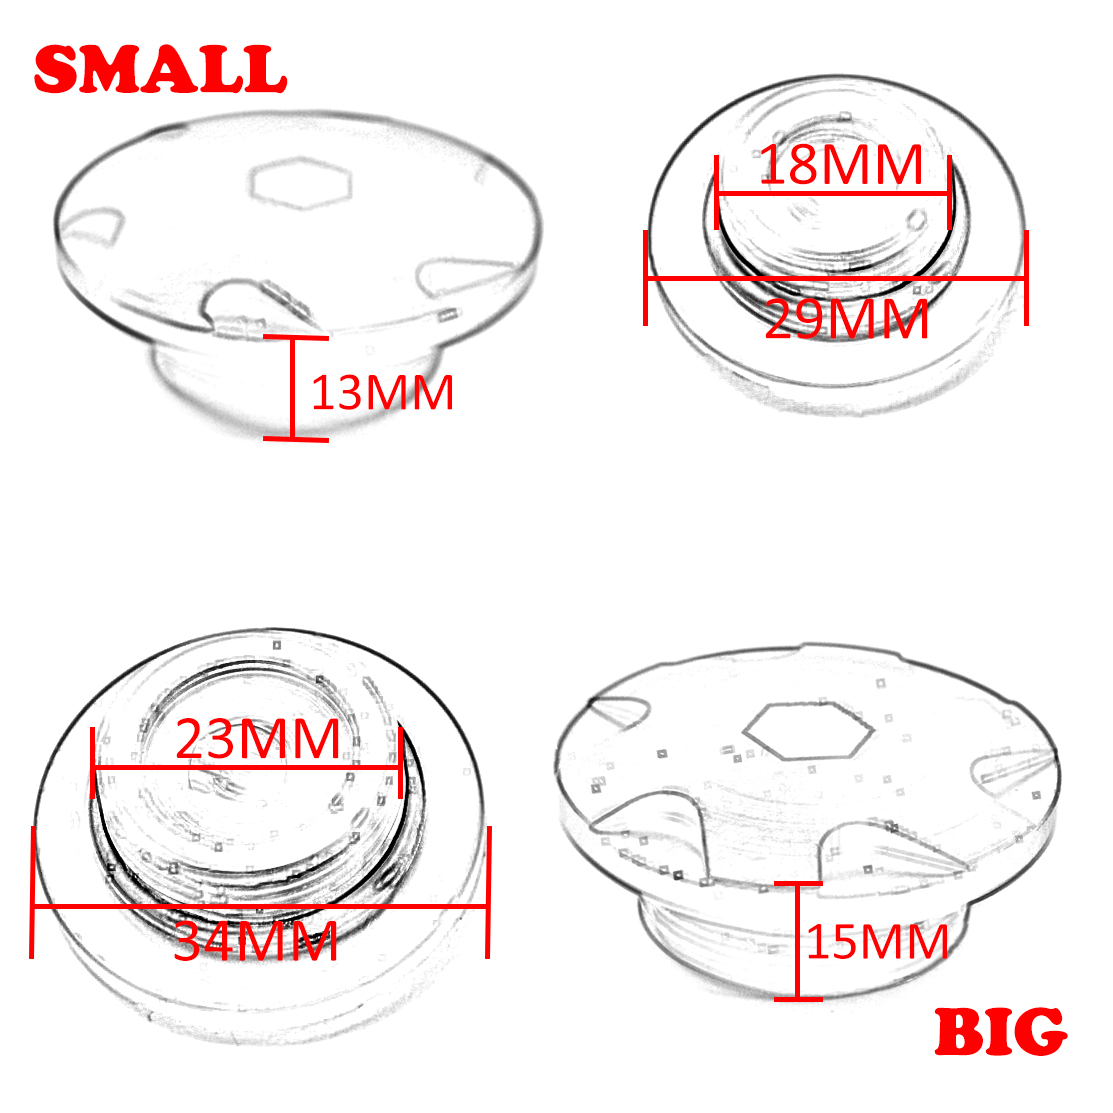 Motorcycle Accessories Engine Filter Cap Covers Cup For KTM Duke 390 Duke 200 DUKE390 2012 2013 2014 2015 2016 2017 2018 2019 in Covers Ornamental Mouldings from Automobiles Motorcycles